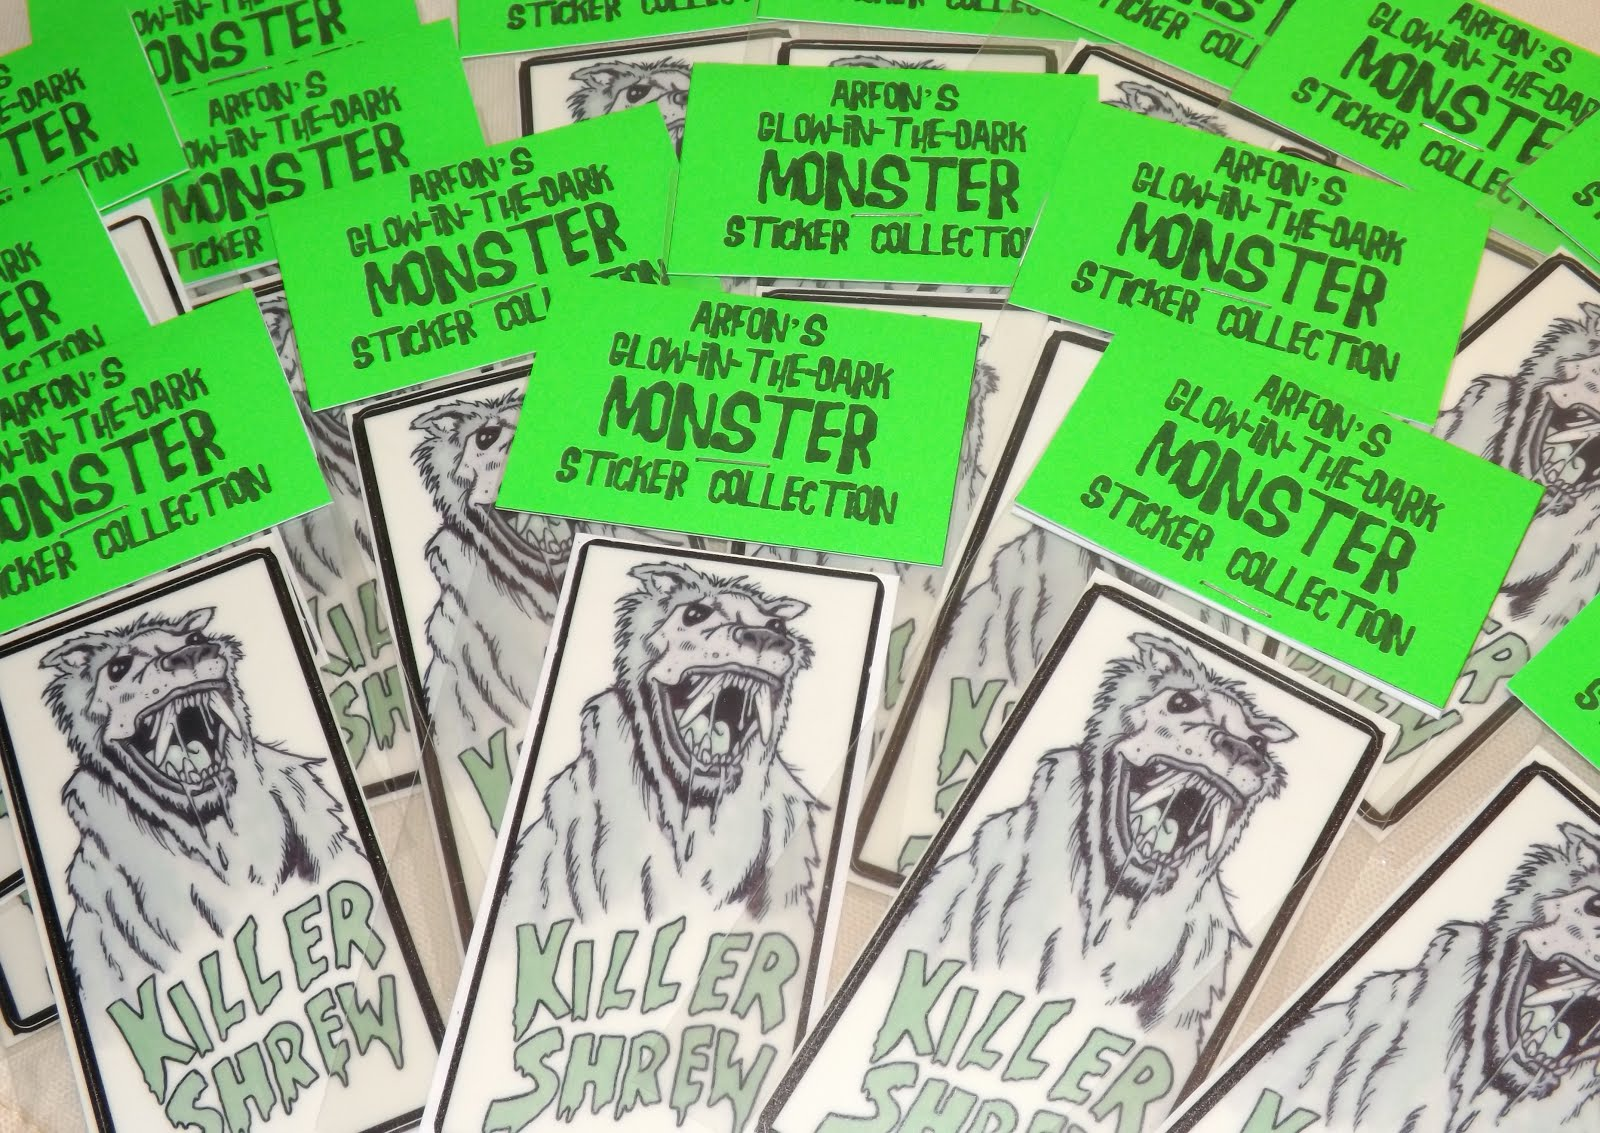 Why not consider supporting me on Patreon by joining my Glow- in- the- Dark Monster Sticker Club?